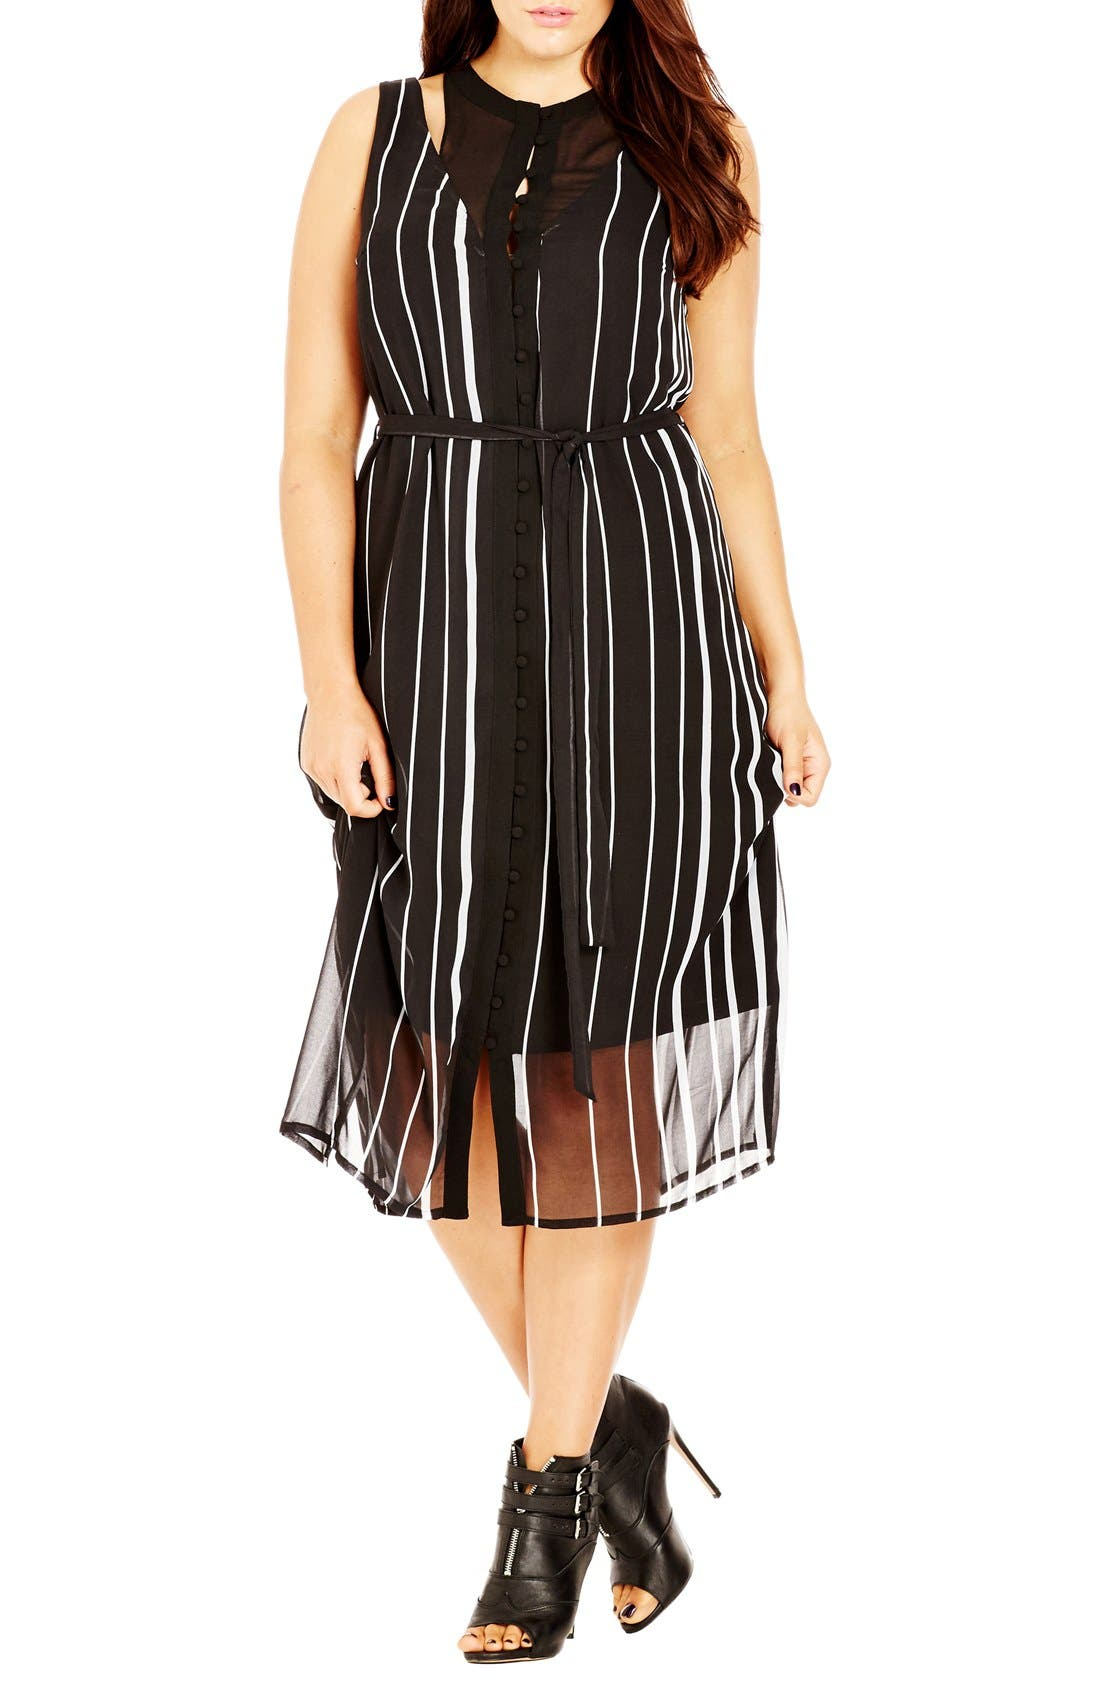 Main Image - City Chic 'Office Romance' Sheer Overlay Dress (Plus Size)